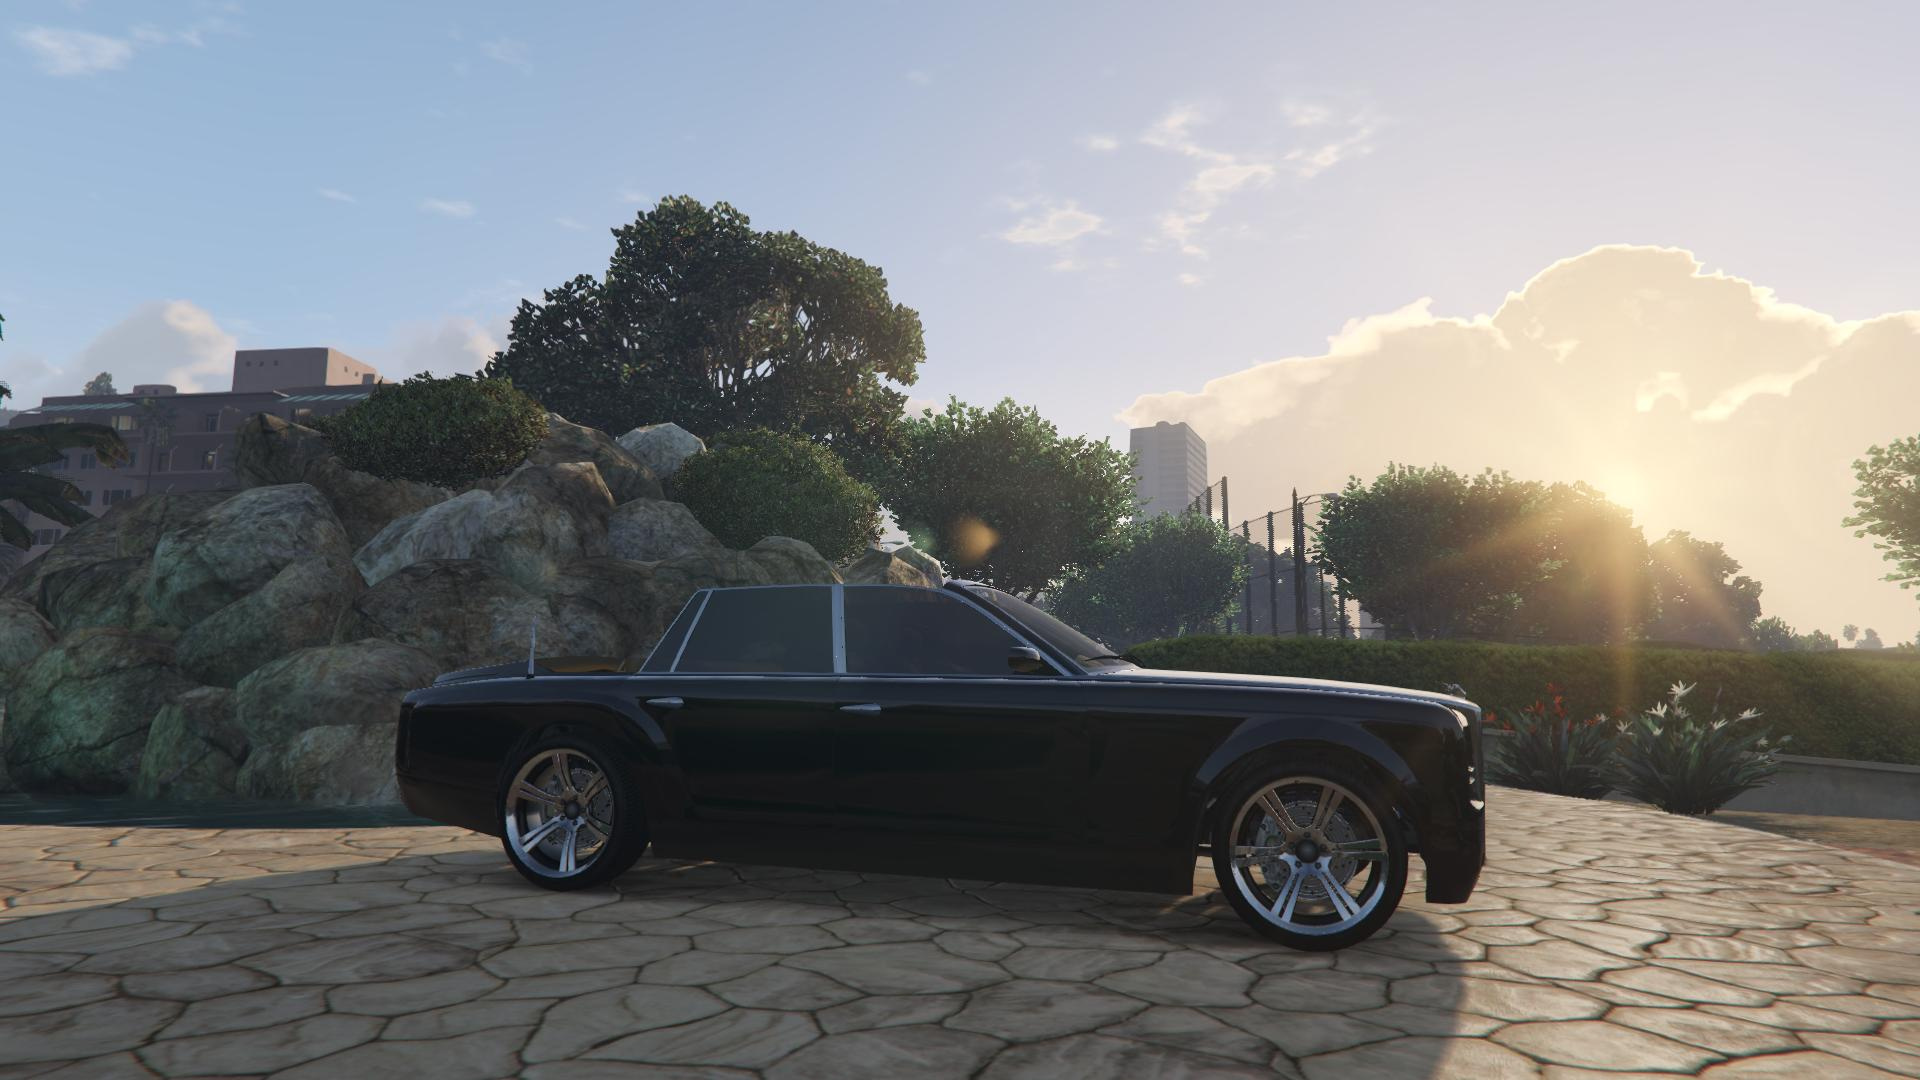 Enus Super Drop Diamond - GTA5-Mods.com Gta 5 Super Diamond